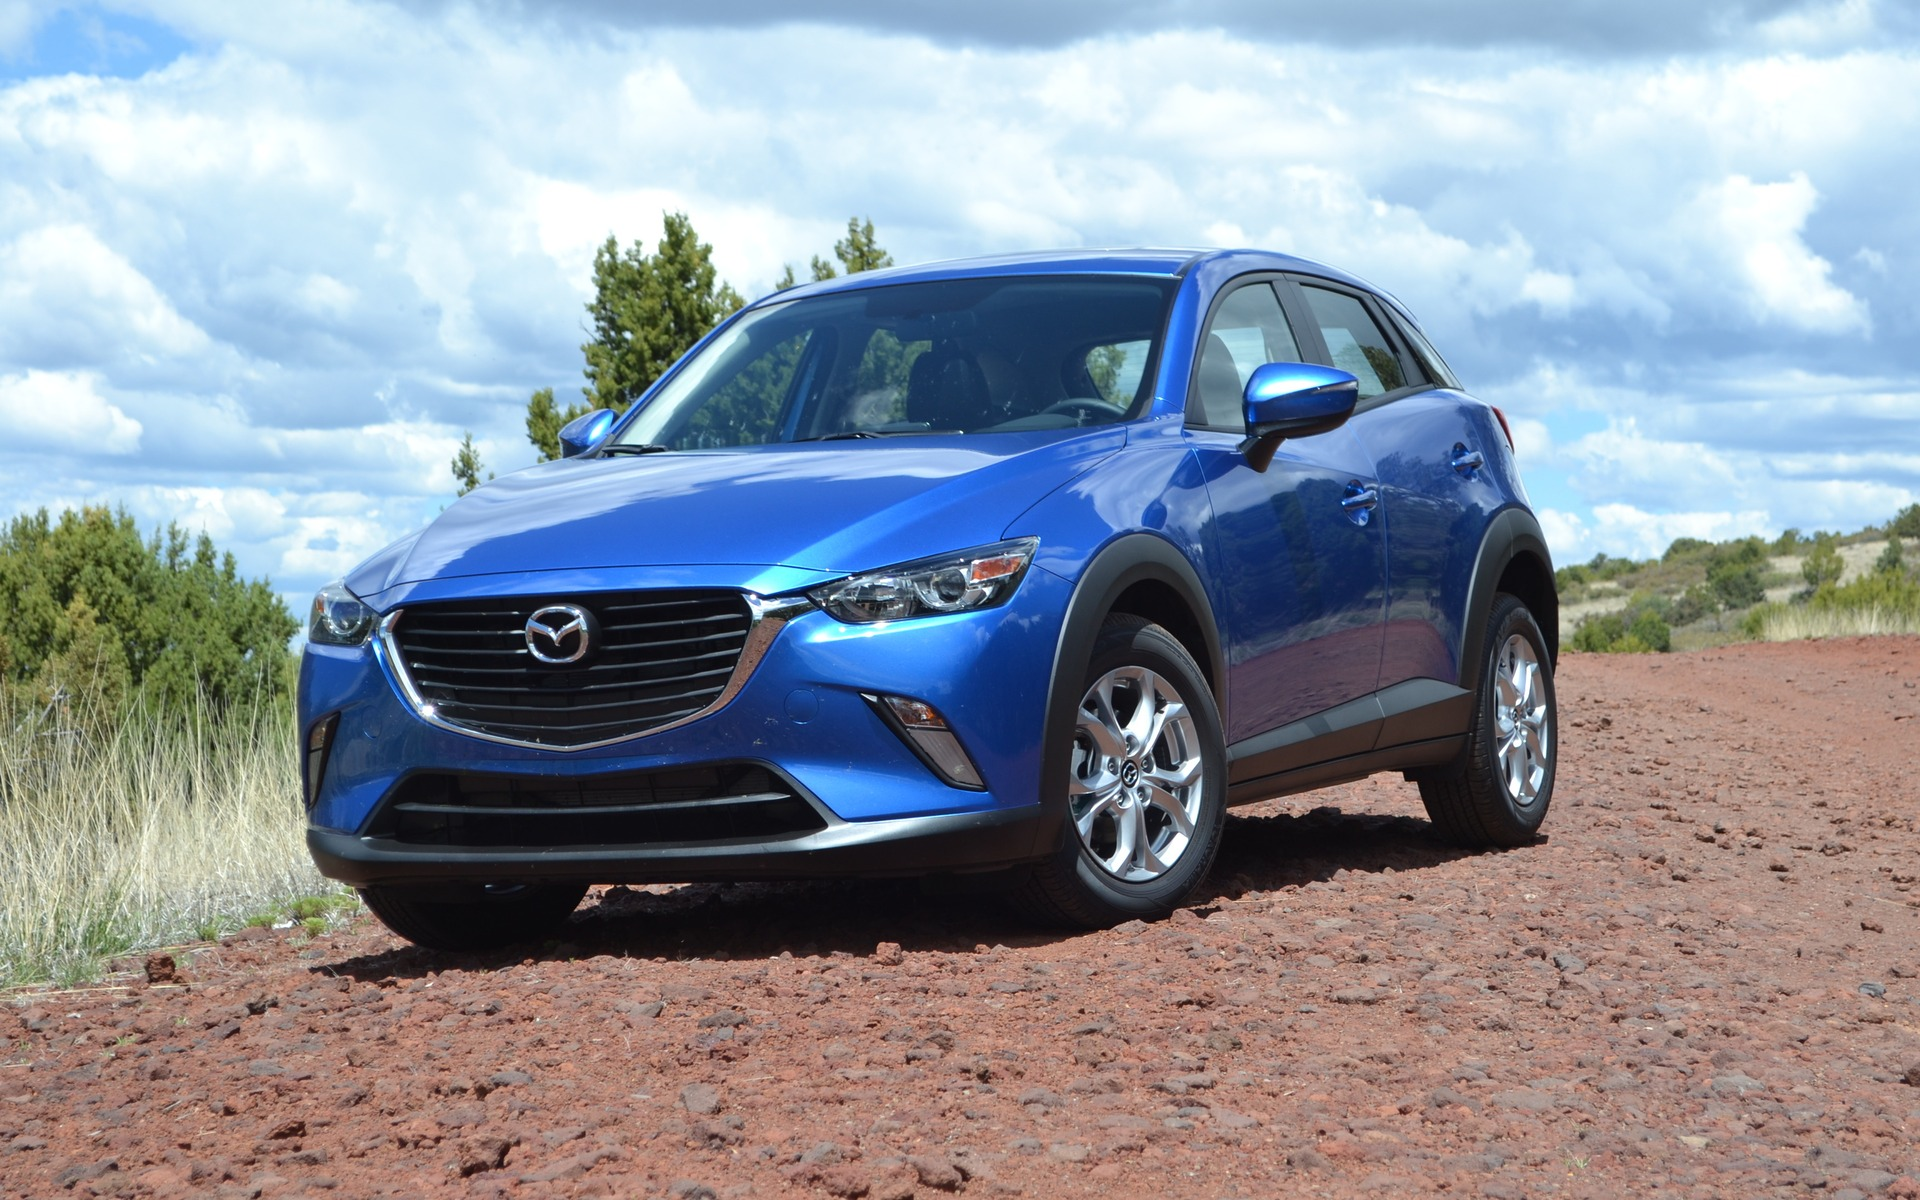 2016 mazda cx 3 rising star the car guide. Black Bedroom Furniture Sets. Home Design Ideas